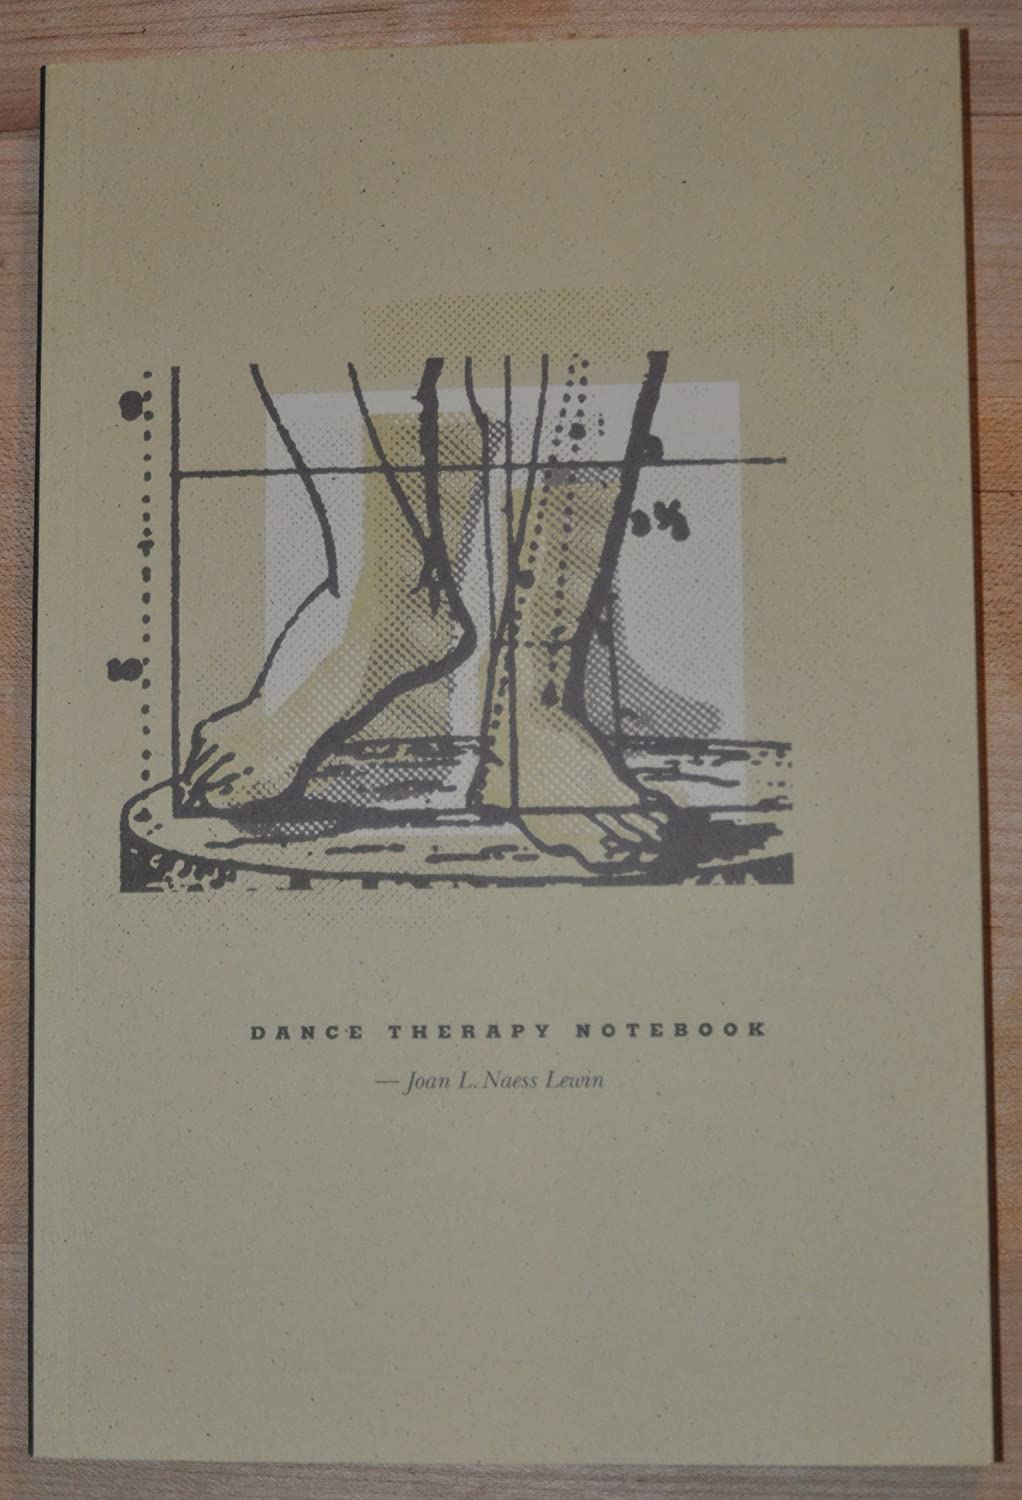 Dance therapy notebook Joan L. Lewin